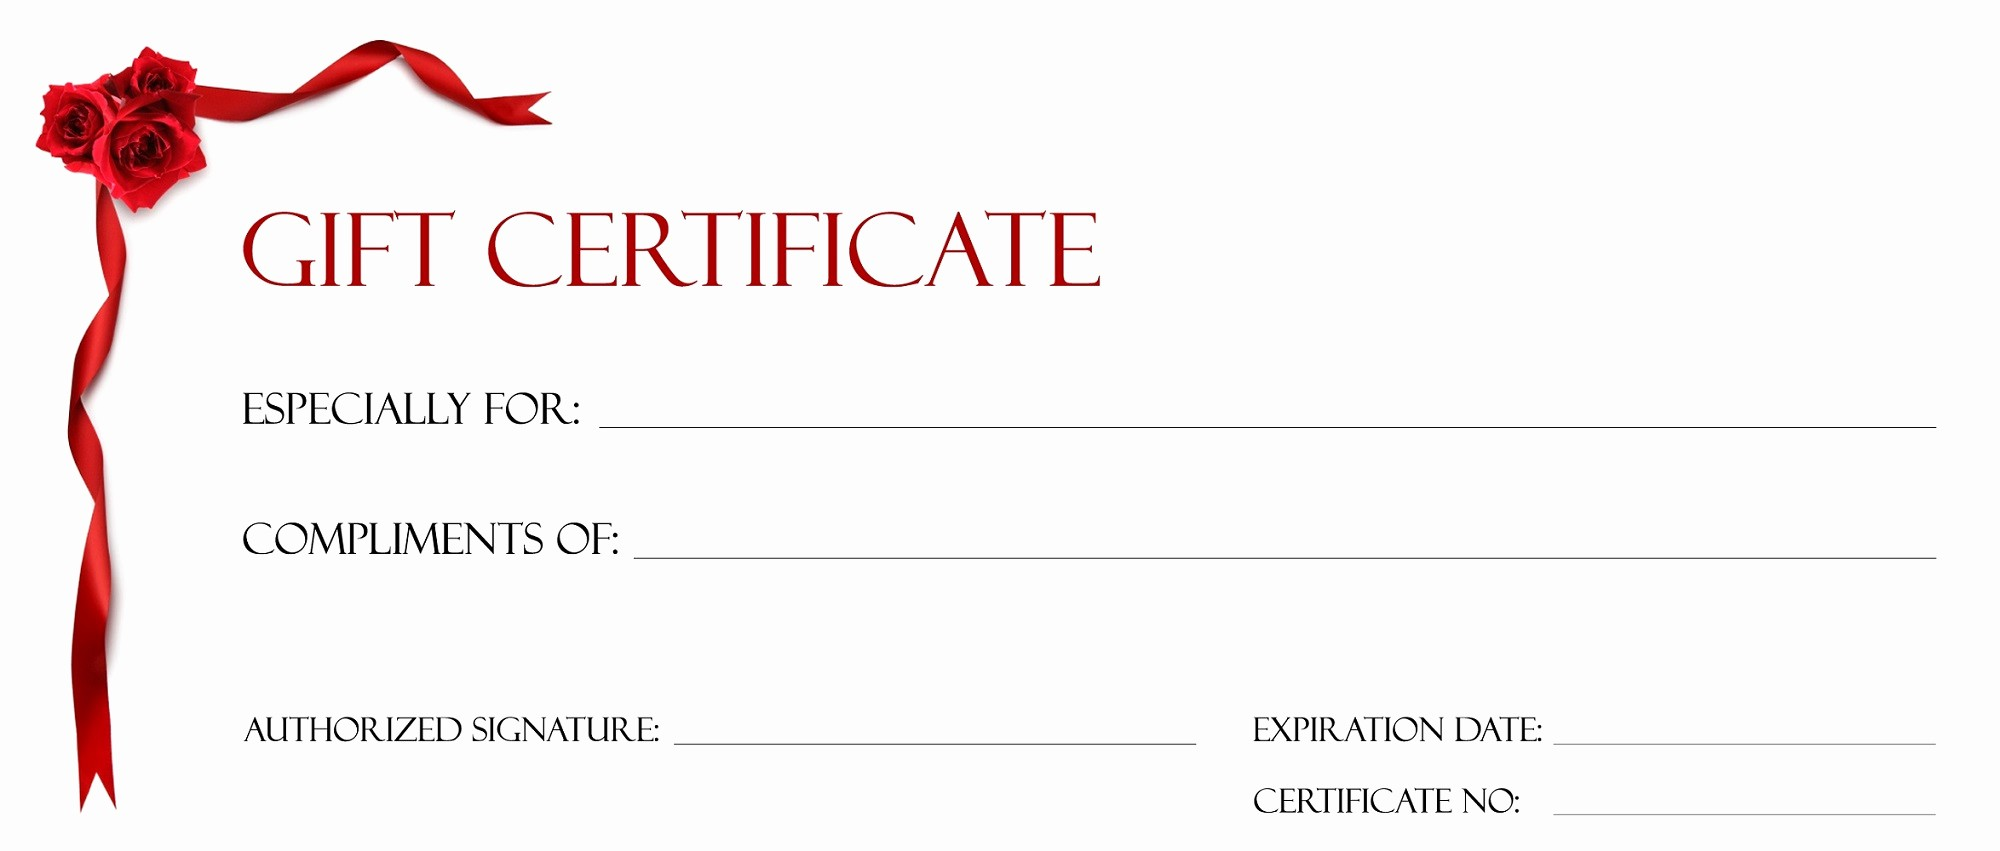 Blank Gift Certificates to Print Elegant Gift Certificate Template for Kids Blanks